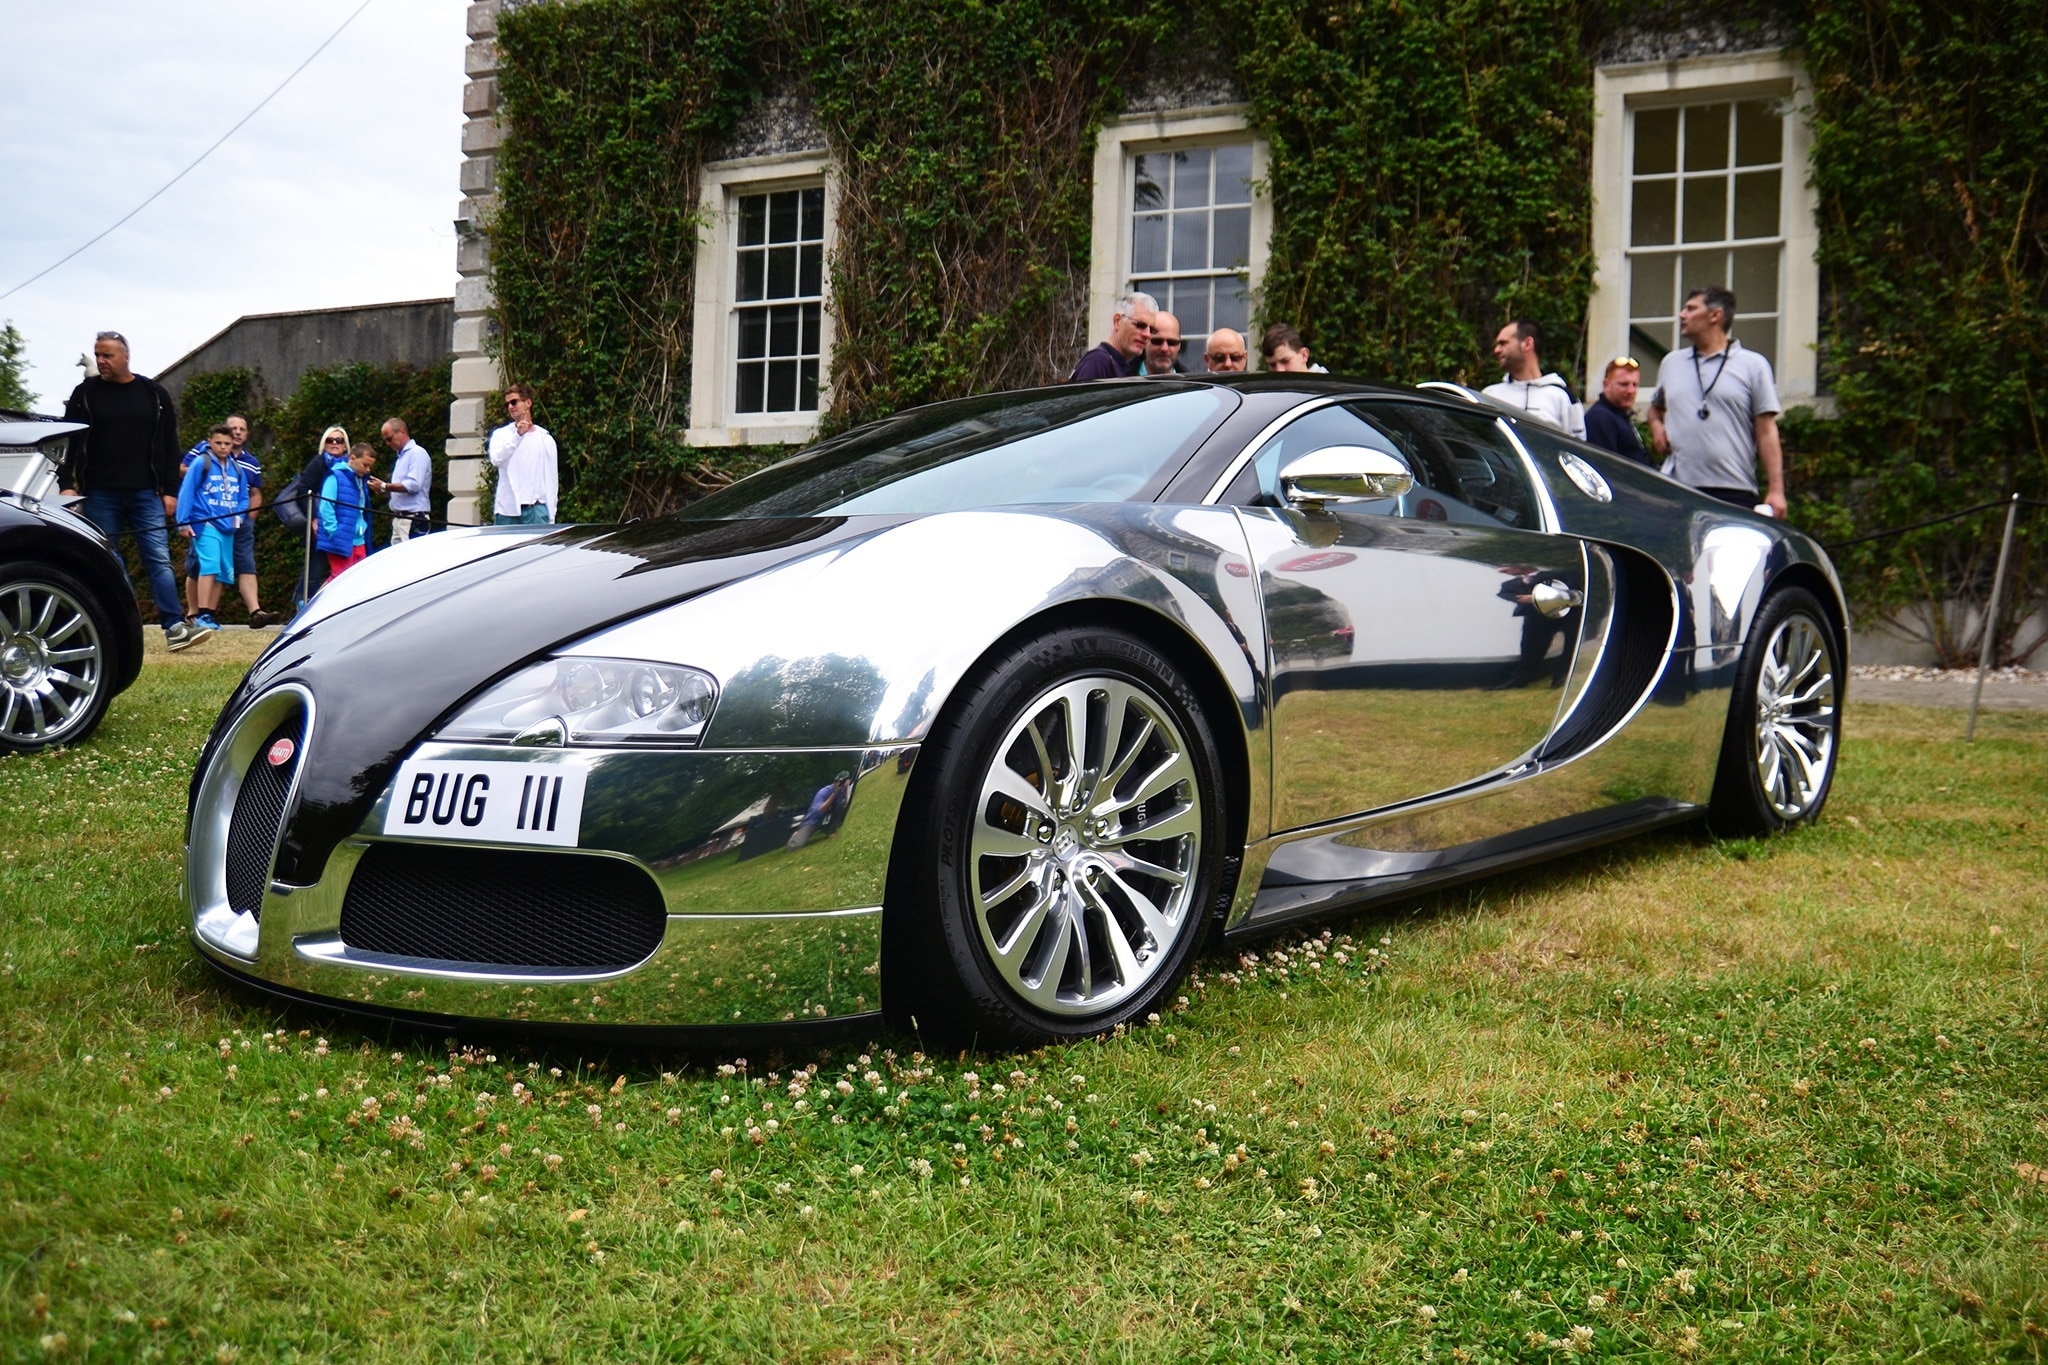 Bugatti Displayed 9 404 Horsepower At The 2017 Goodwood Festival Of